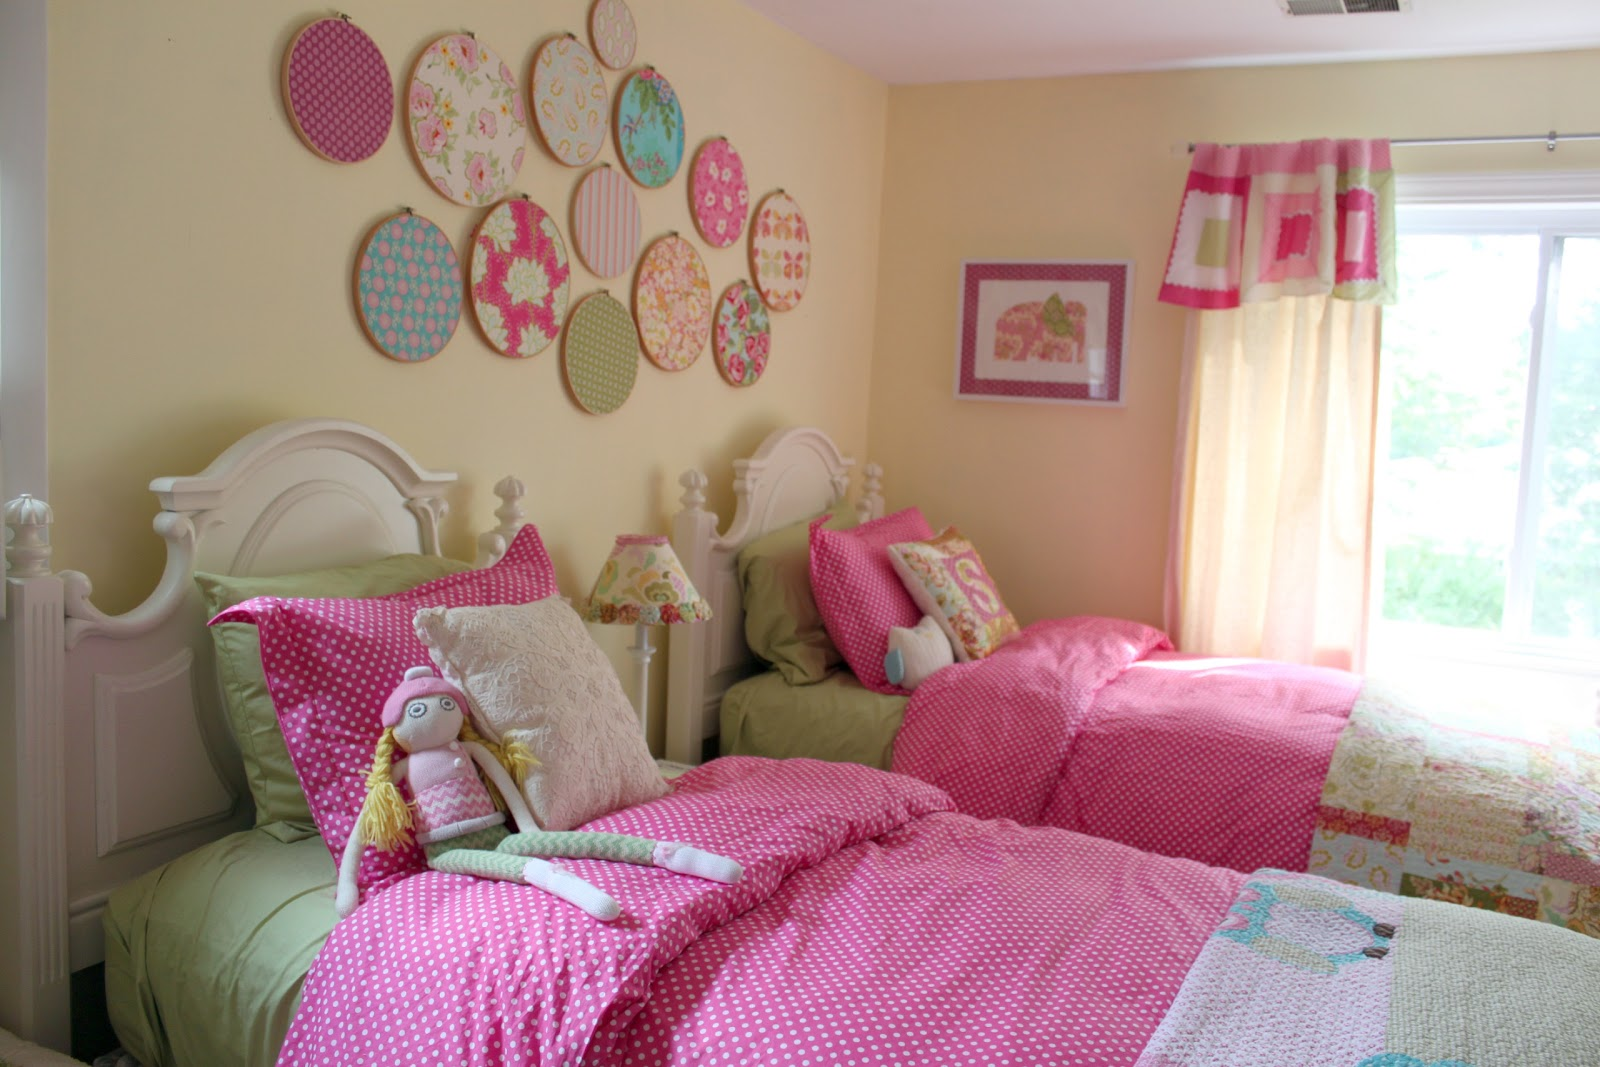 Decorating girls shared toddler bedroom the cottage mama for Bedroom ideas for girls sharing a room